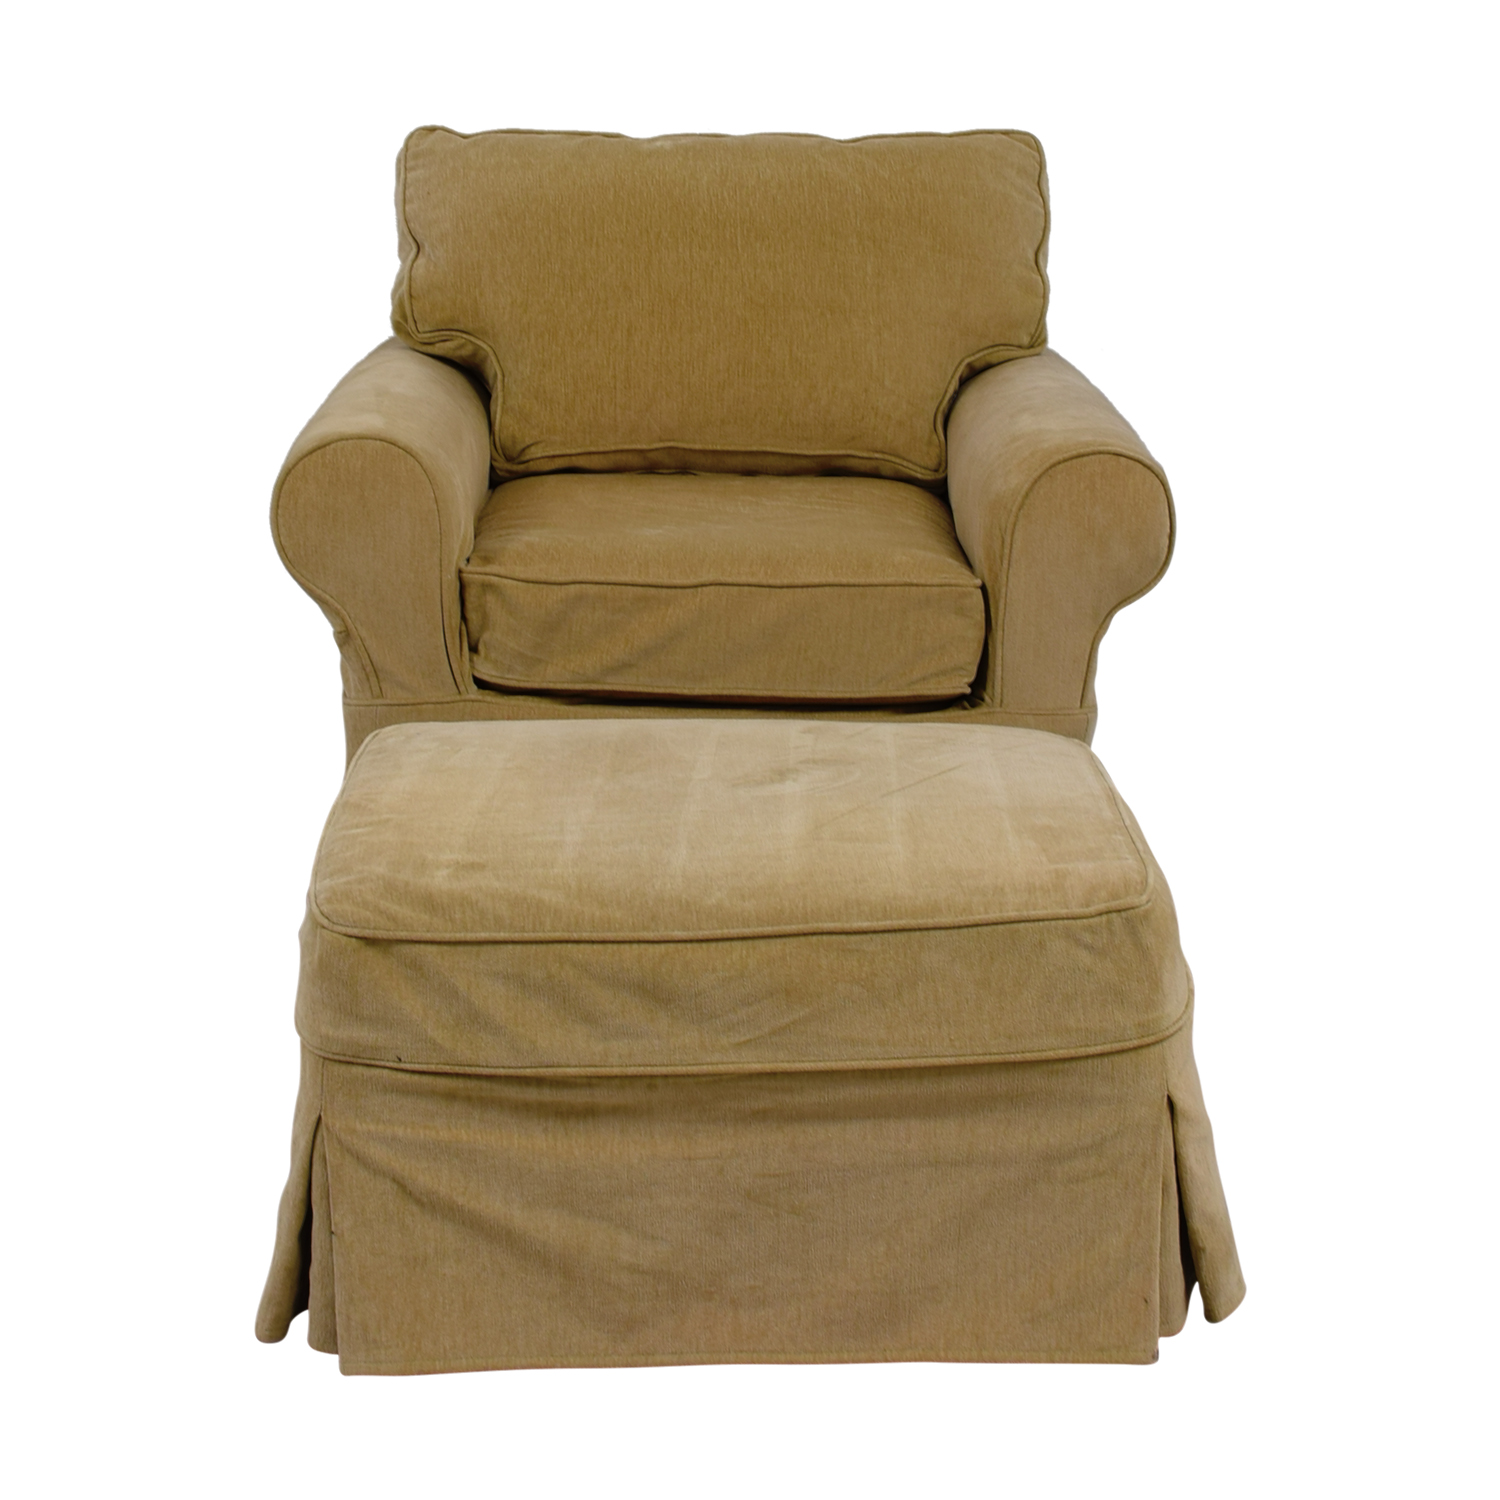 Mitchell Gold + Bob Williams Mitchell Gold + Bob Williams Beige Accent Chair and Ottoman used